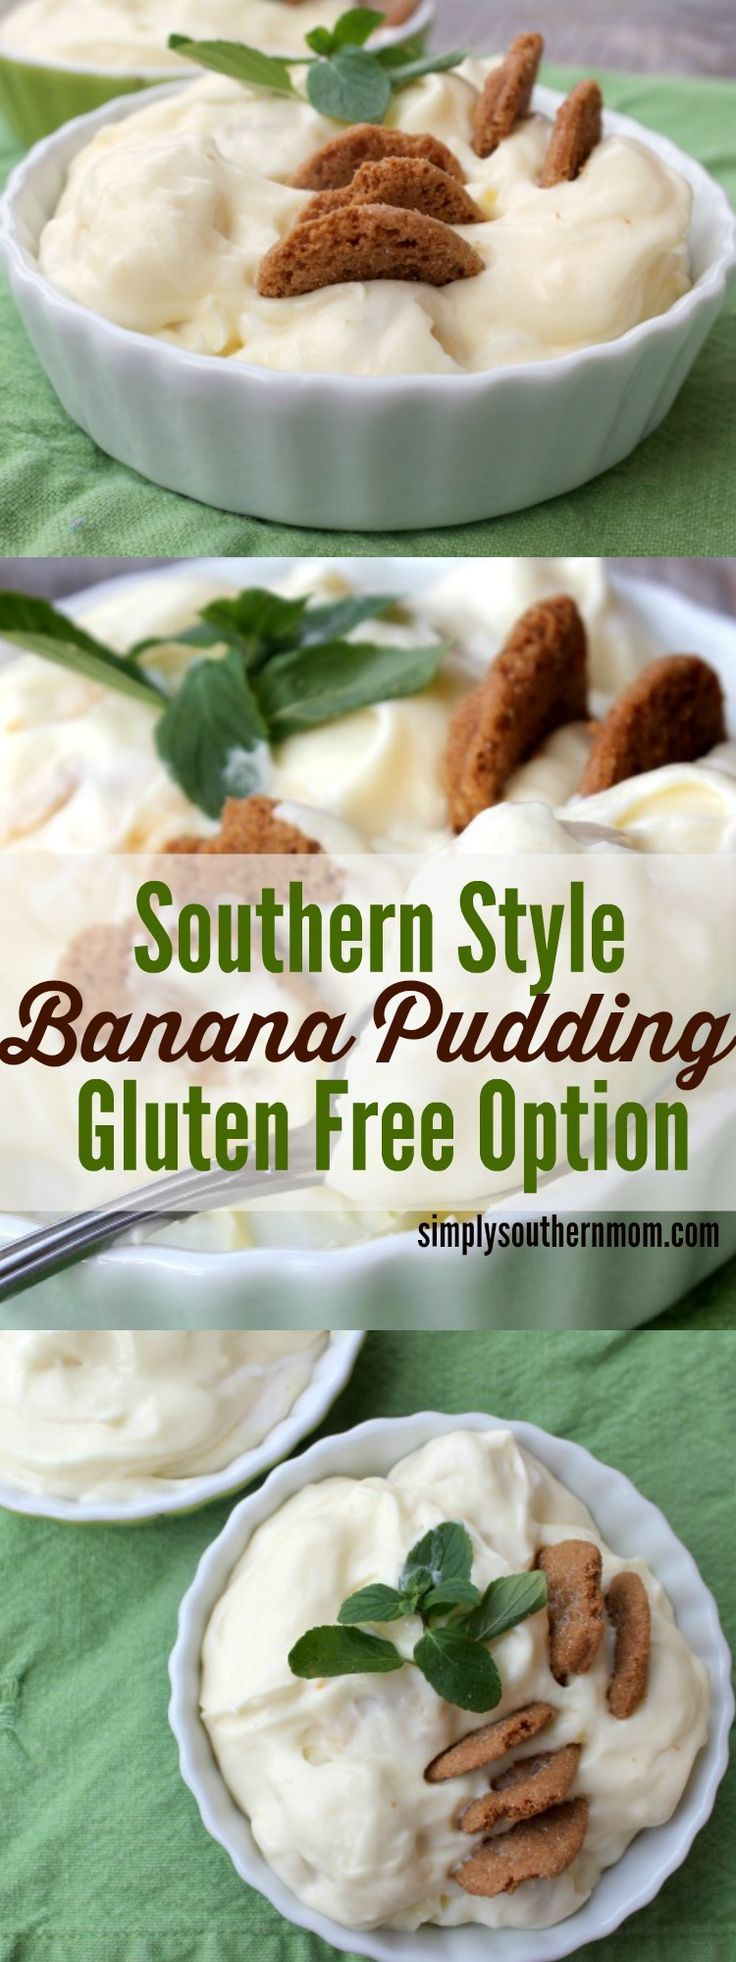 Easy southern style banana pudding recipe gluten free